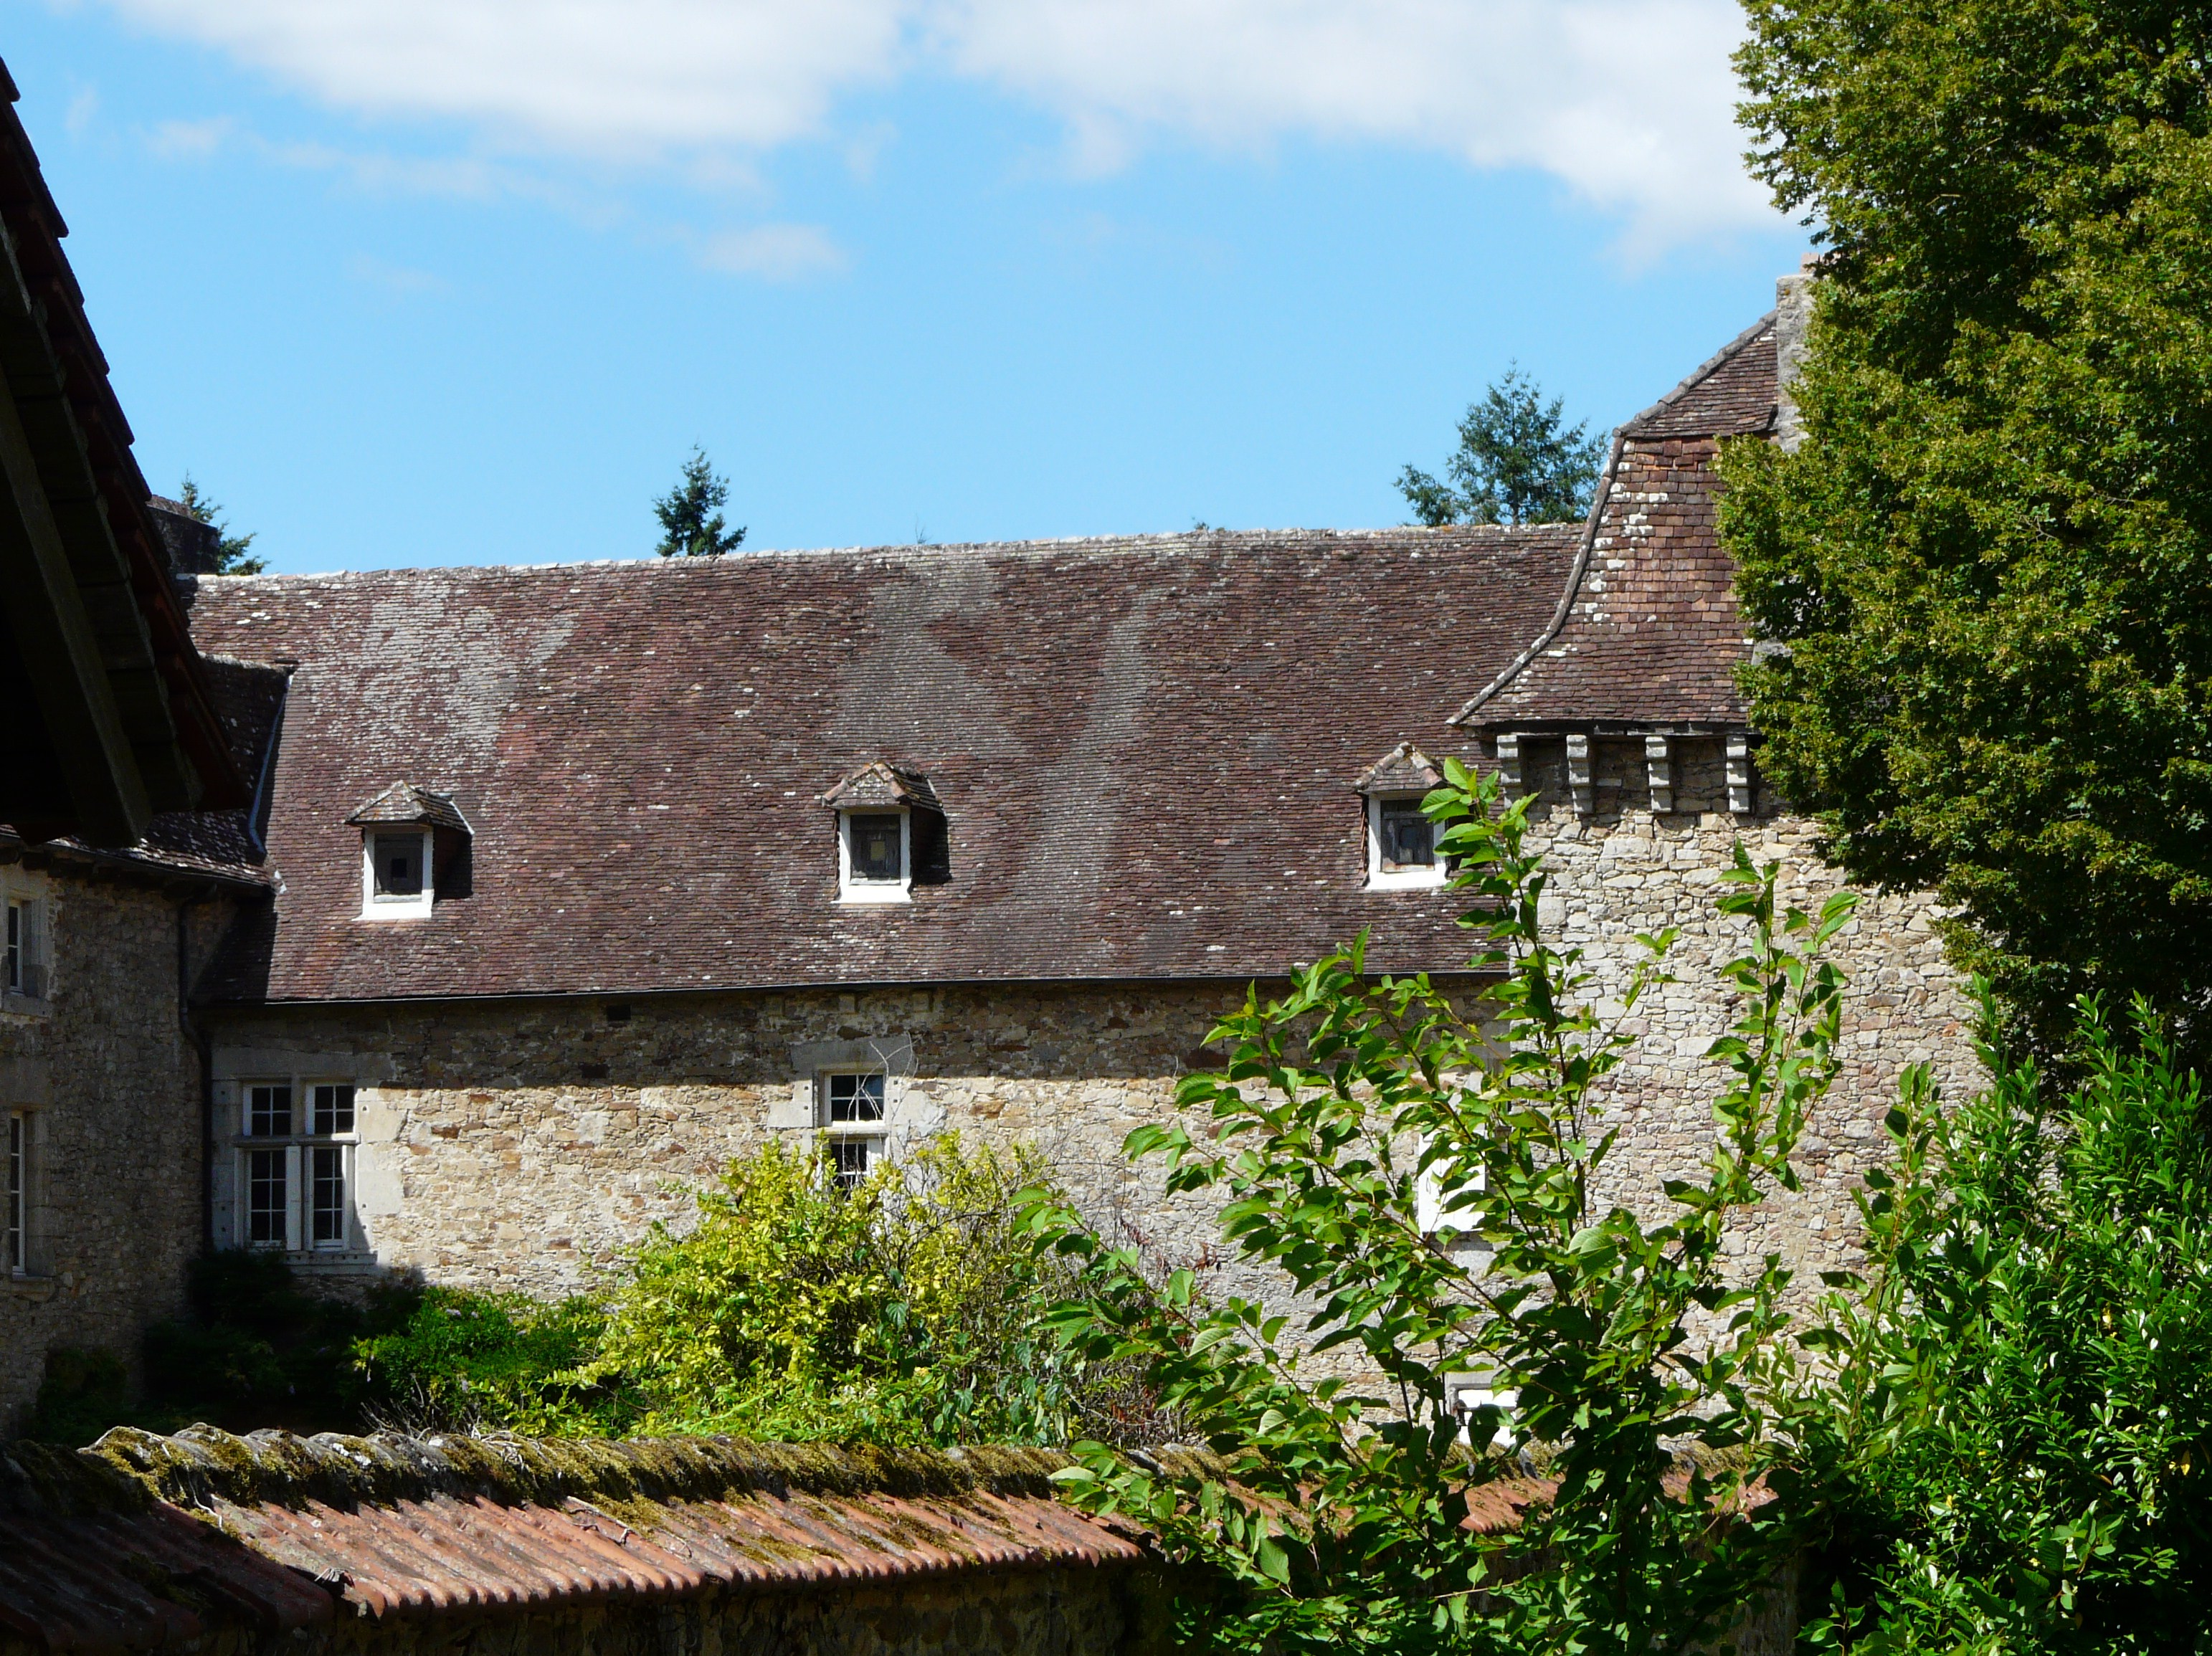 https://upload.wikimedia.org/wikipedia/commons/4/4f/Saint-Yrieix-la-Perche_ch%C3%A2teau_Douillac_%281%29.jpg